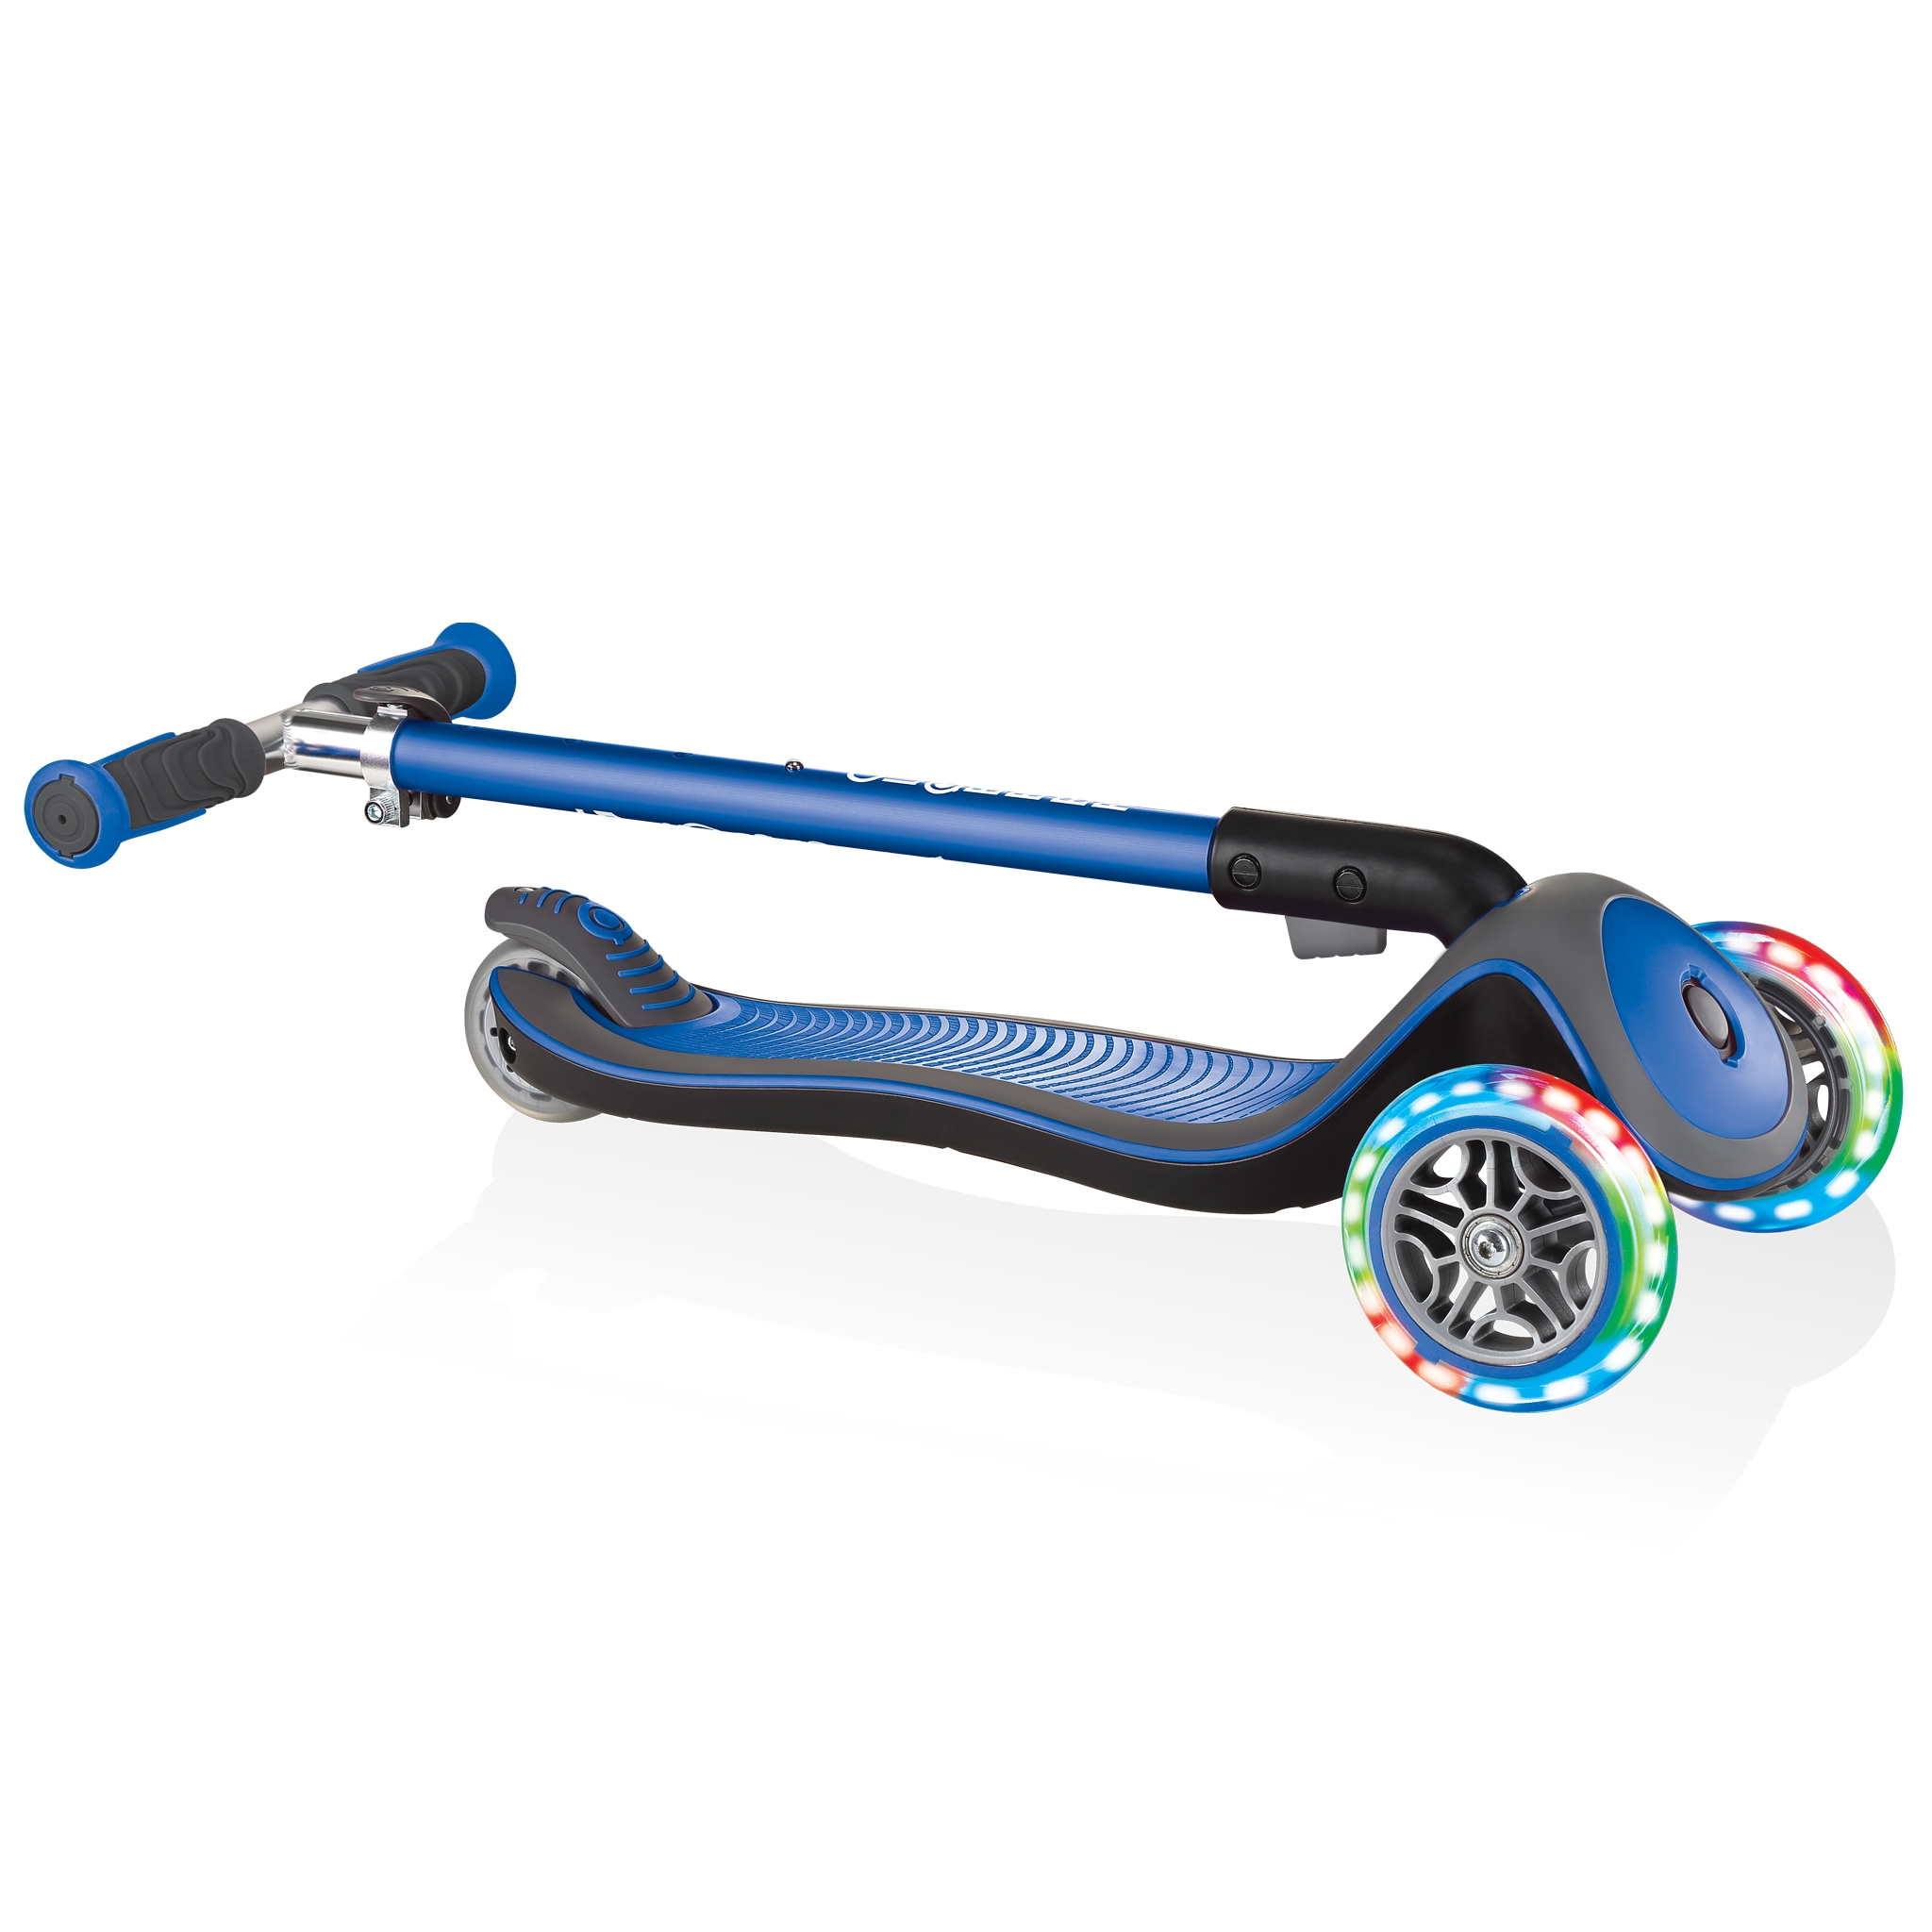 Globber-ELITE-DELUXE-LIGHTS-3-wheel-foldable-scooter-for-kids-with-light-up-scooter-wheels-navy-blue 3